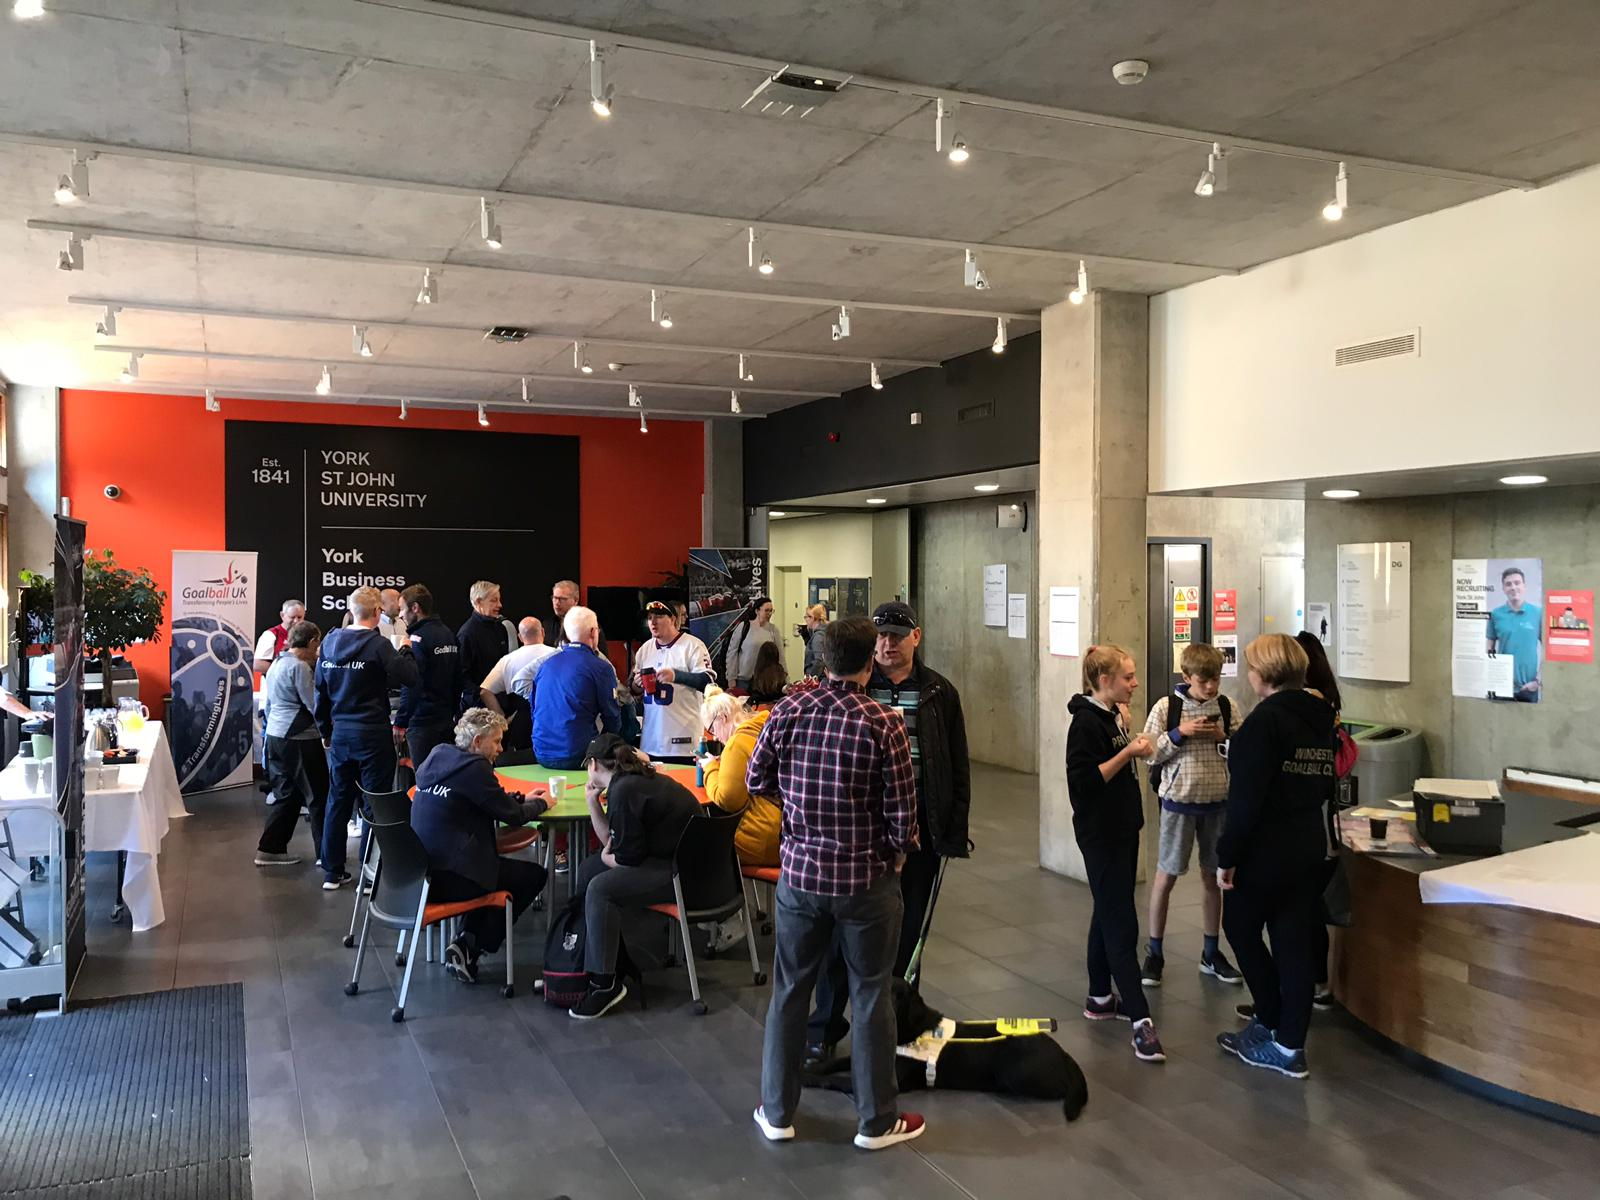 Registraion and refreshments in the foyer at the start of day 1